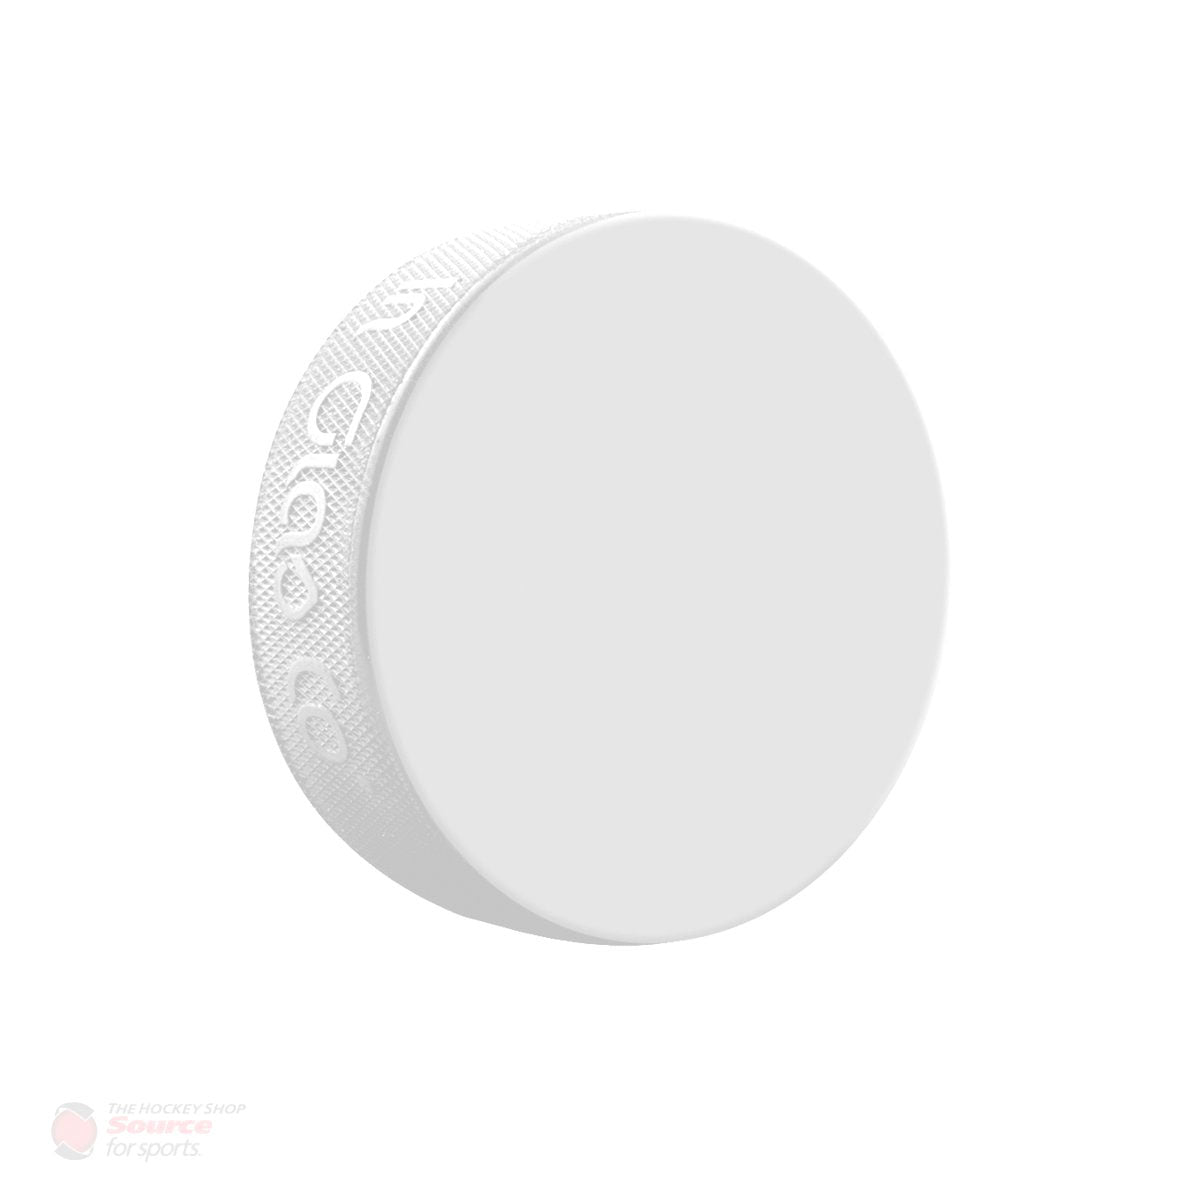 Inglasco Colored Training Hockey Puck